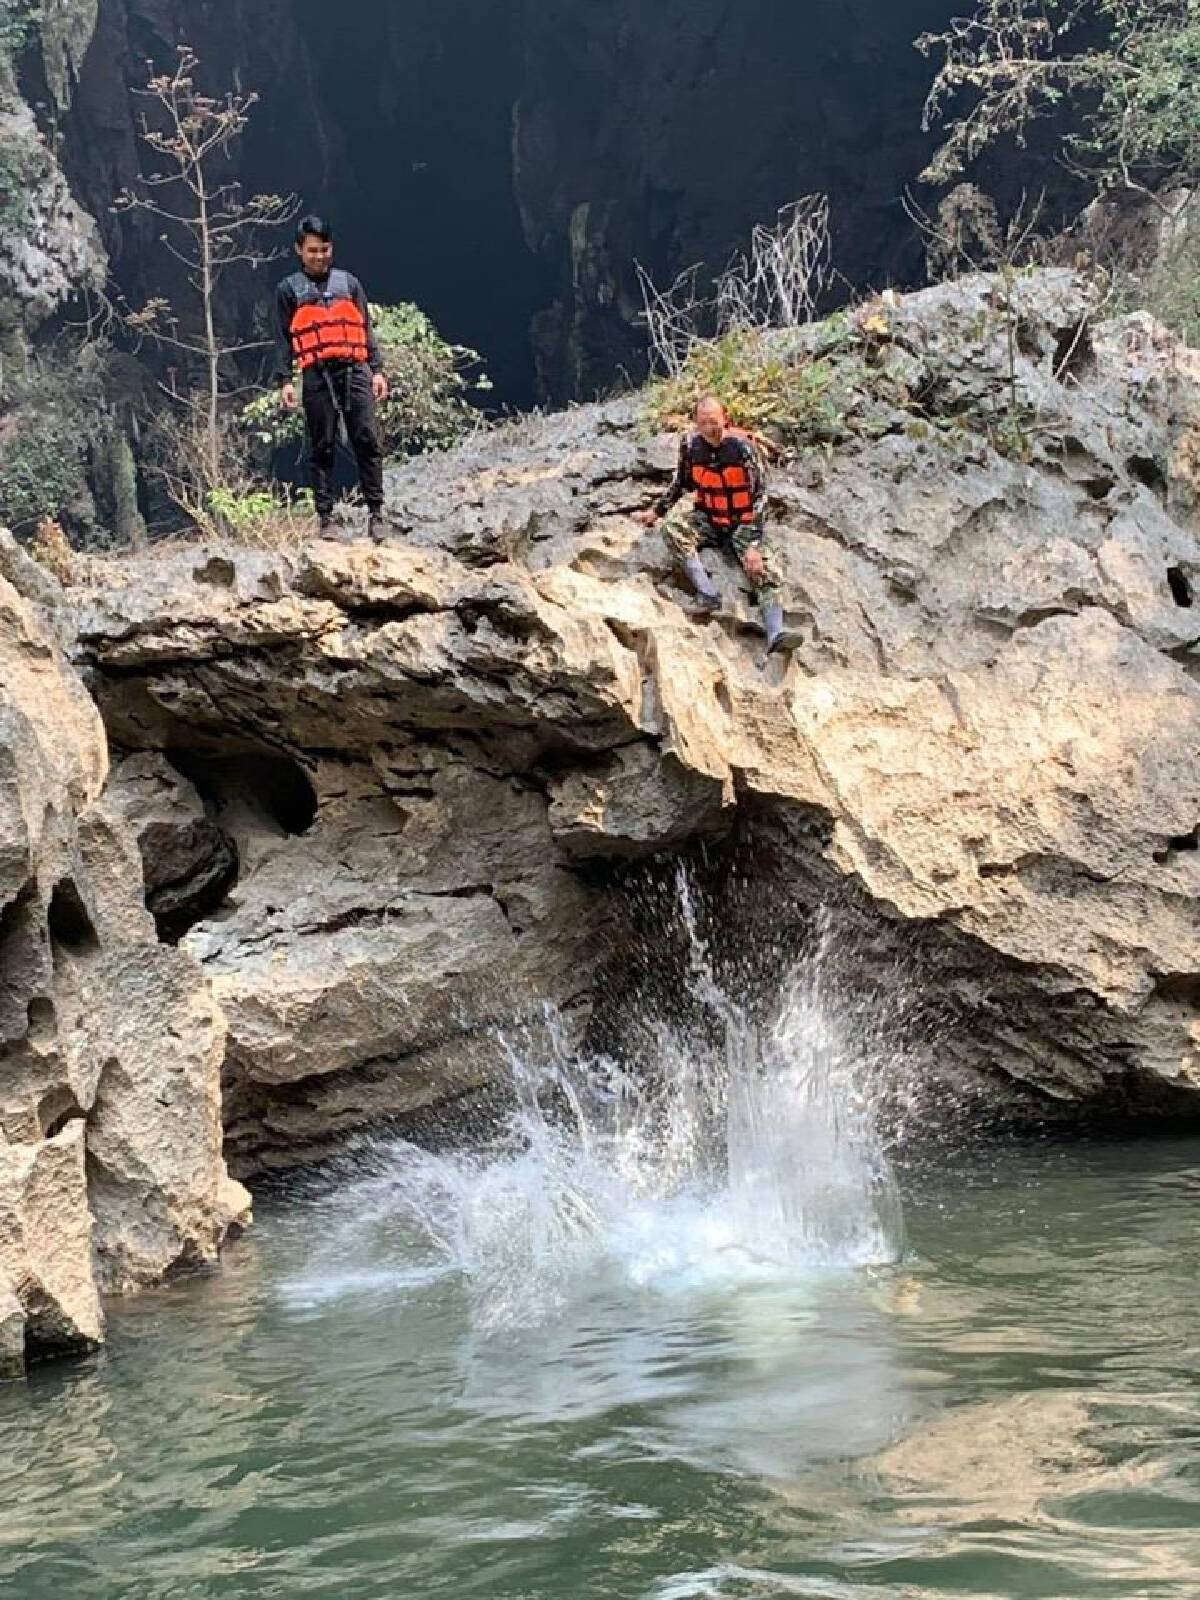 Prime chance to see thrilling Kanchanaburi caves